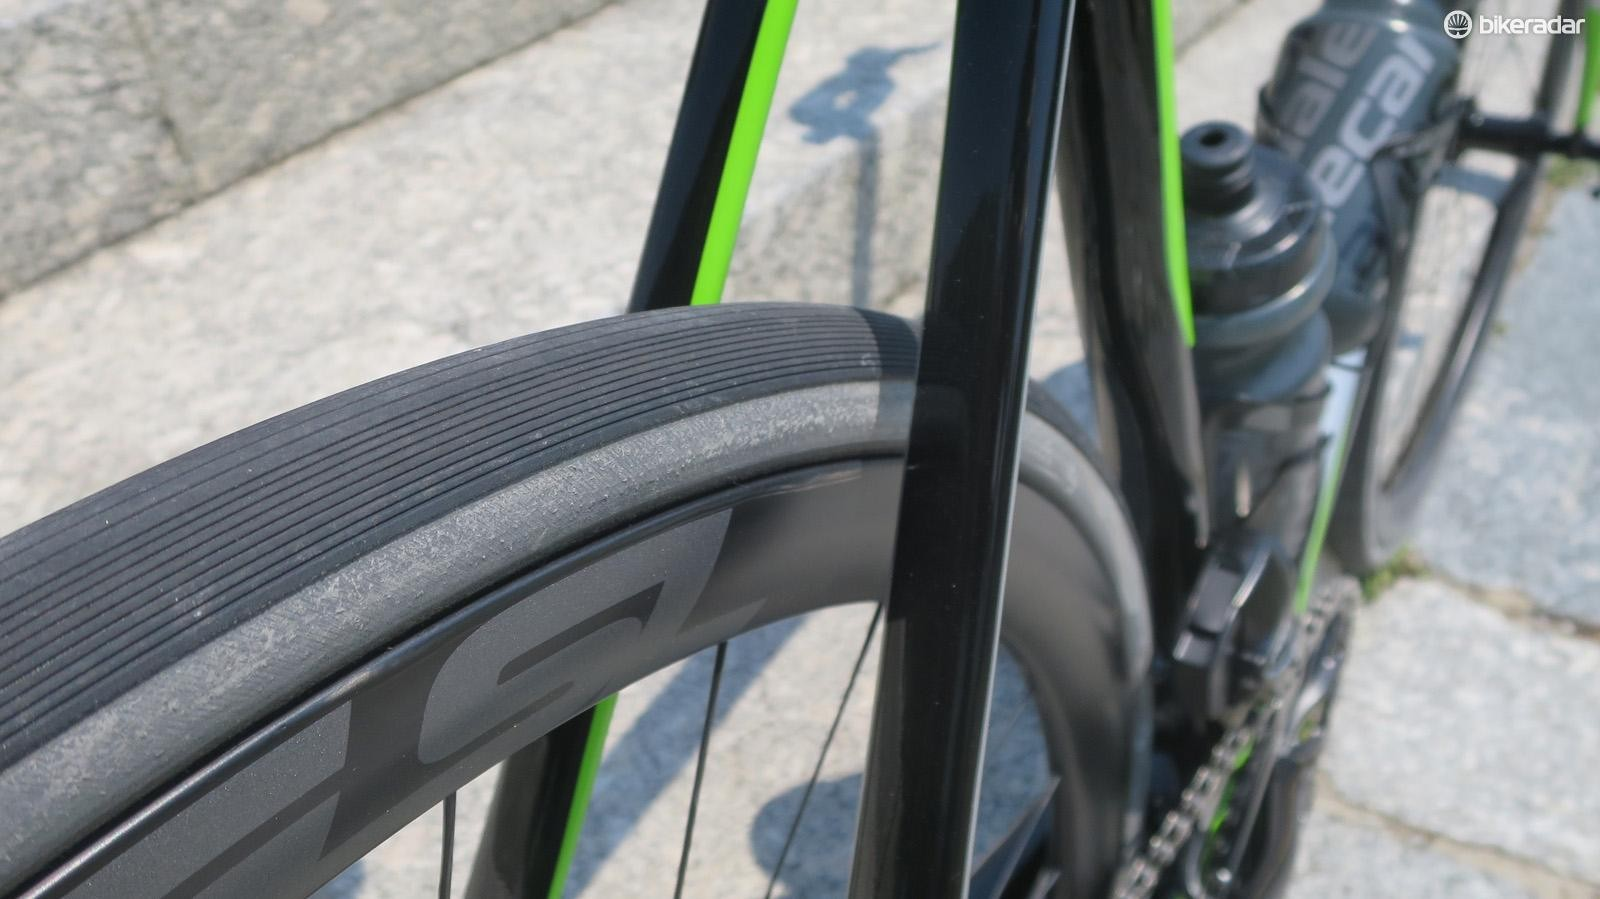 The new back-end offers increased tyre clearance over the old model